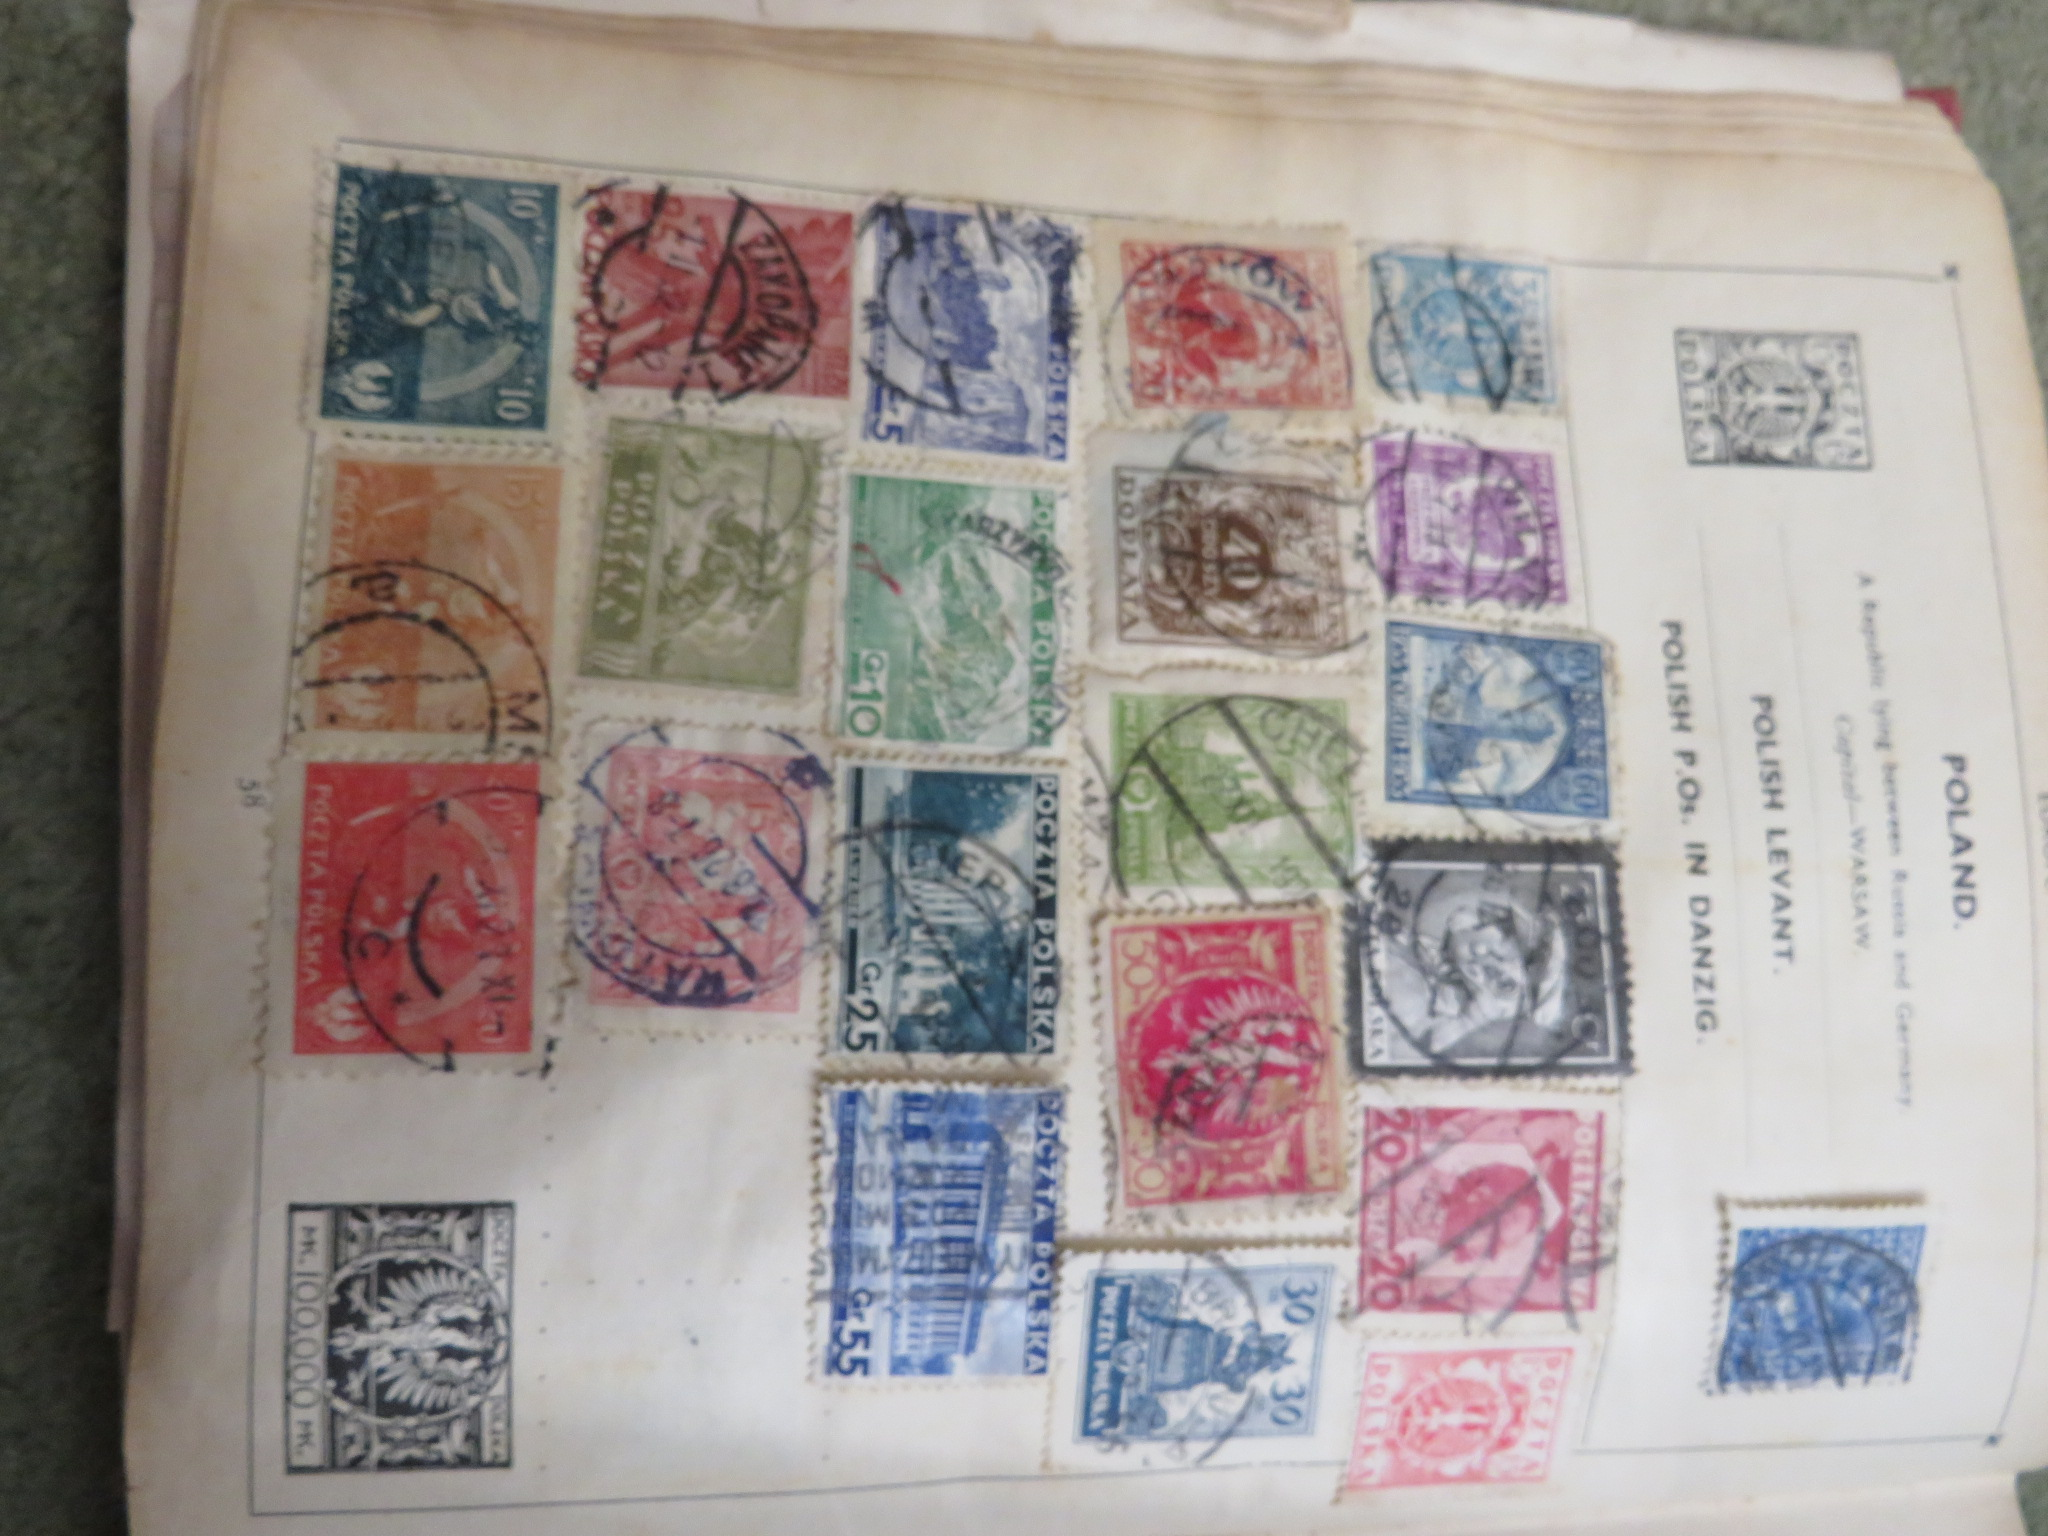 BLUE ZENITH STAMP ALBUM AND RED IMPROVED POSTAGE STAMP ALBUM WITH CONTENTS, TOGETHER WITH COVERS AND - Image 5 of 5